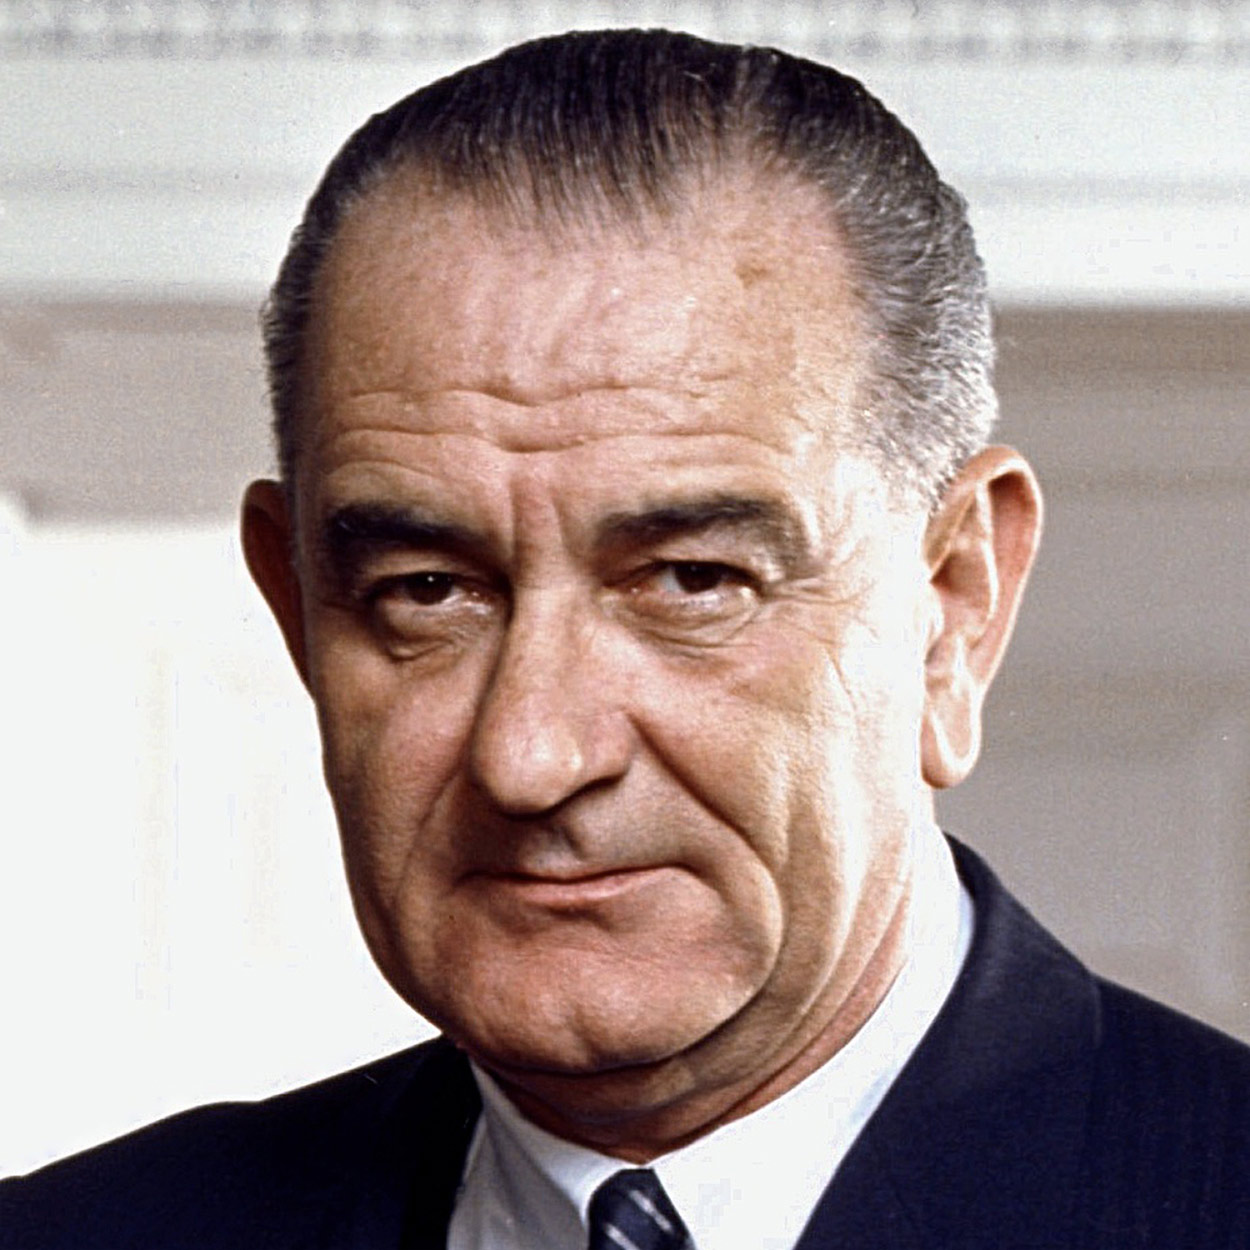 Portrait of Lyndon B. Johnson, the 36th President of the United States